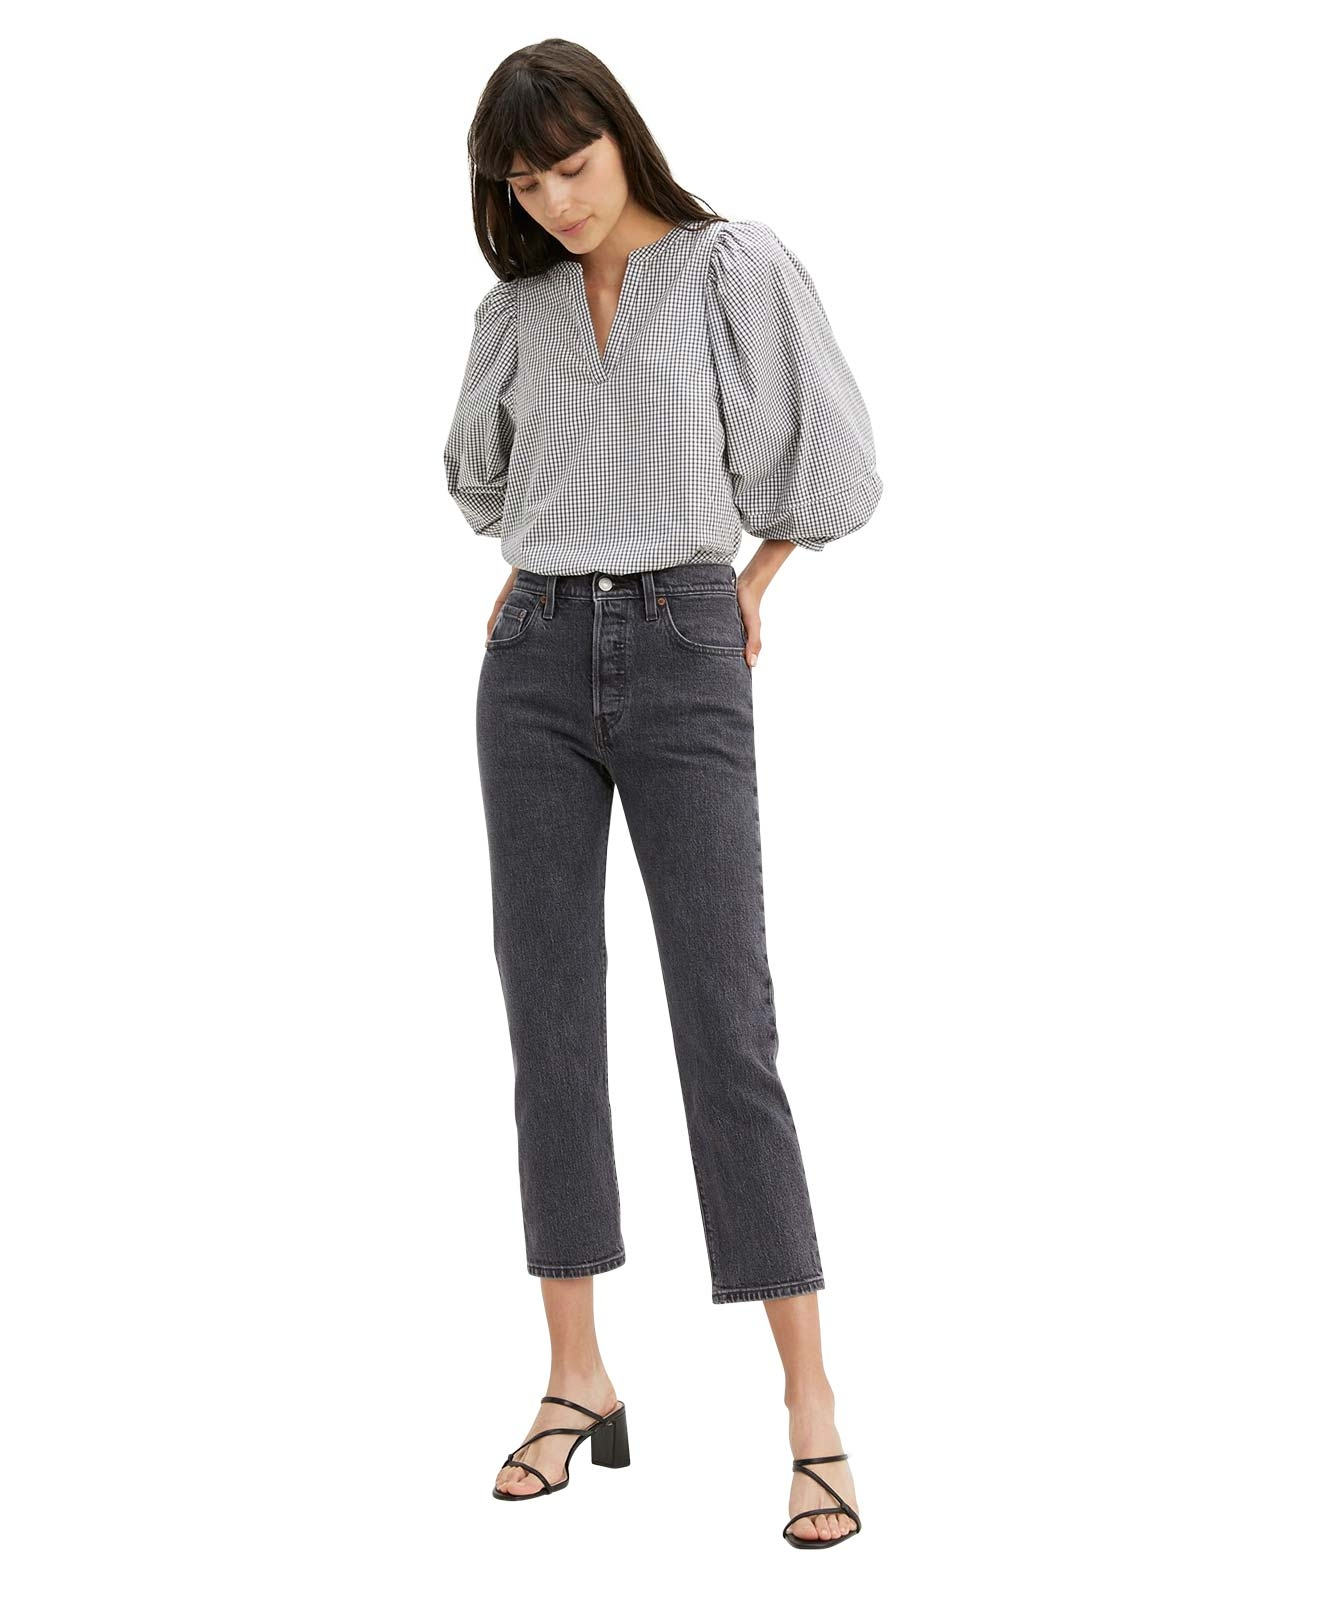 Hosen - Levis Ankle Jeans 501 Crop in Cabo Fade  - Onlineshop Jeans Meile